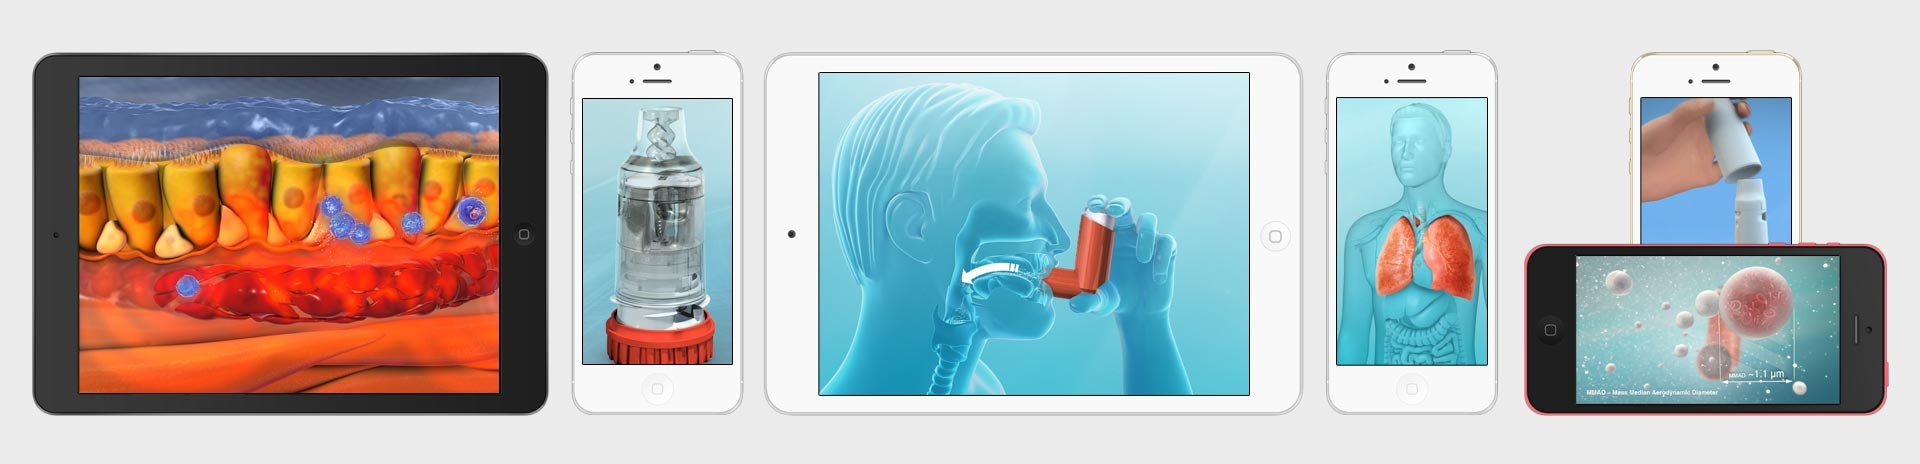 COPD Devices Slider